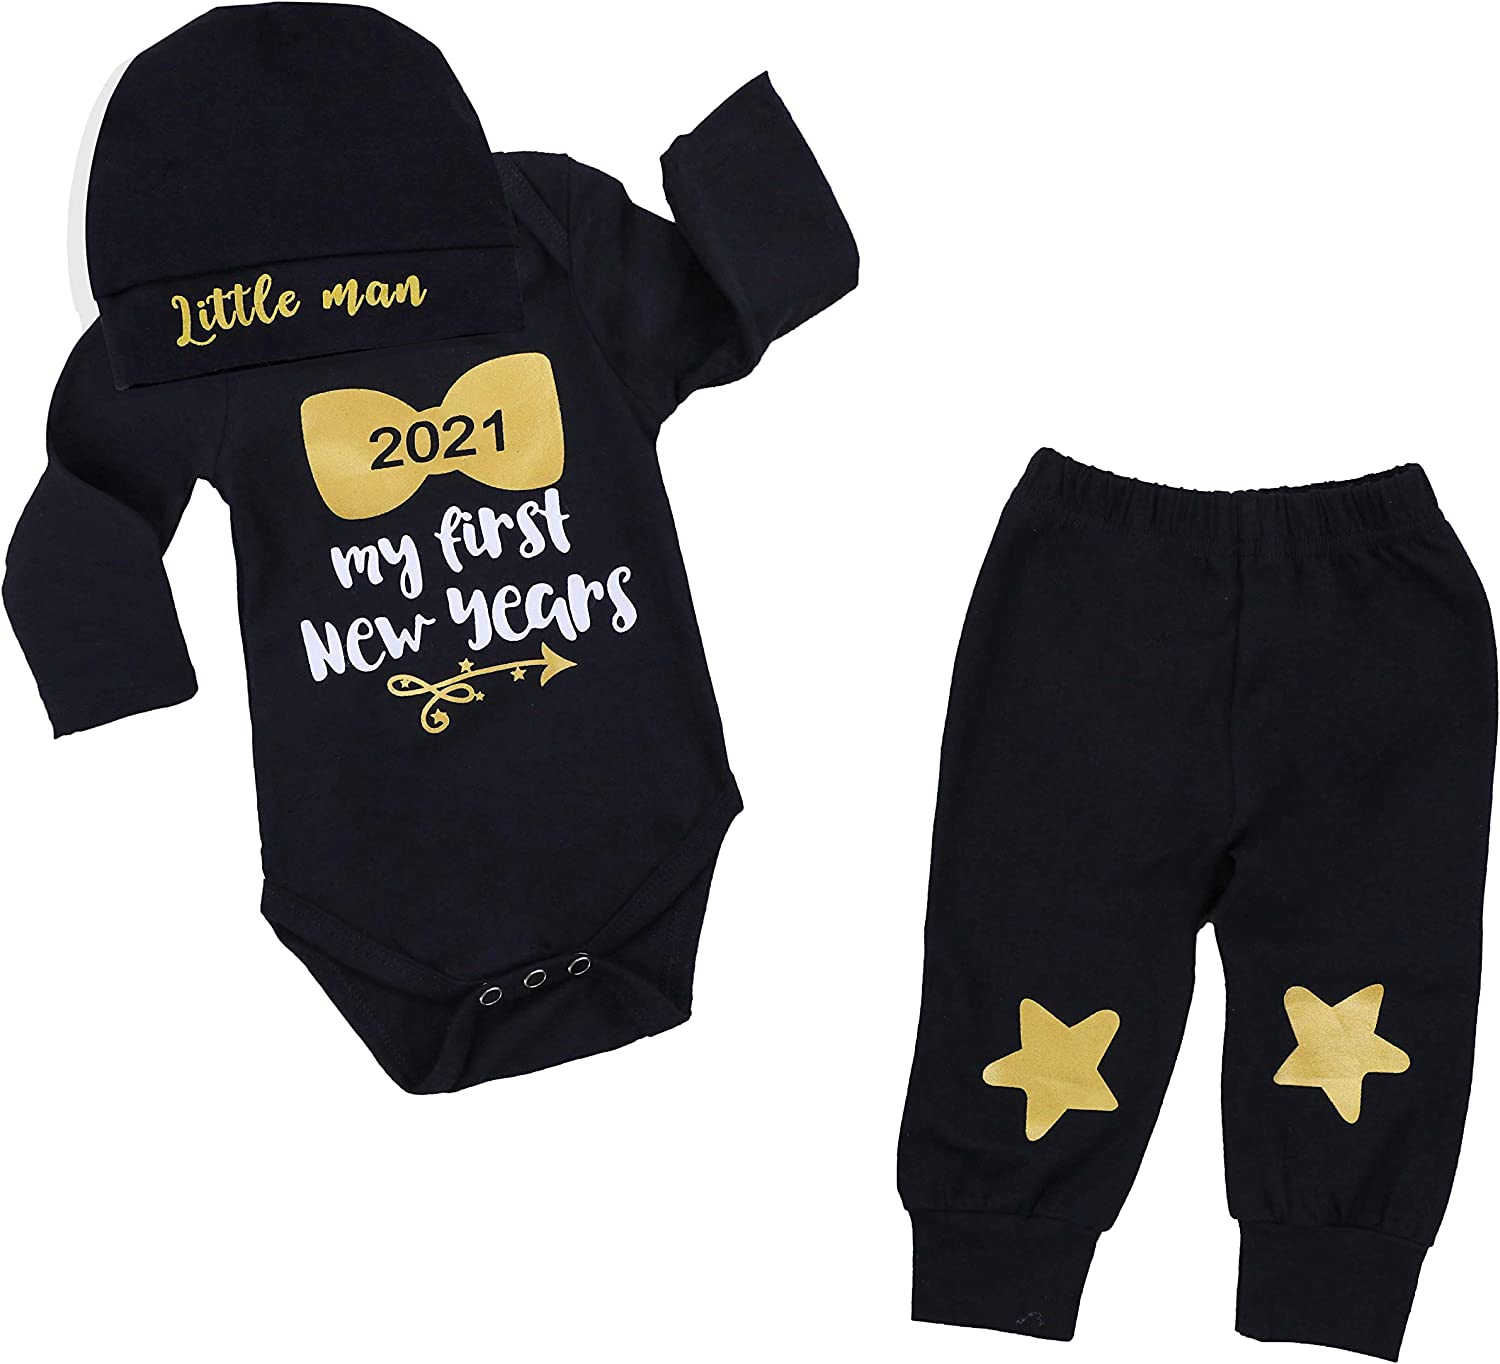 Amazon Com Newborn Baby Boy 1st New Year Clothes 2021 My First New Year Romper Cute Star Pants Little Man Hats 3pcs Outfit Set Clothing